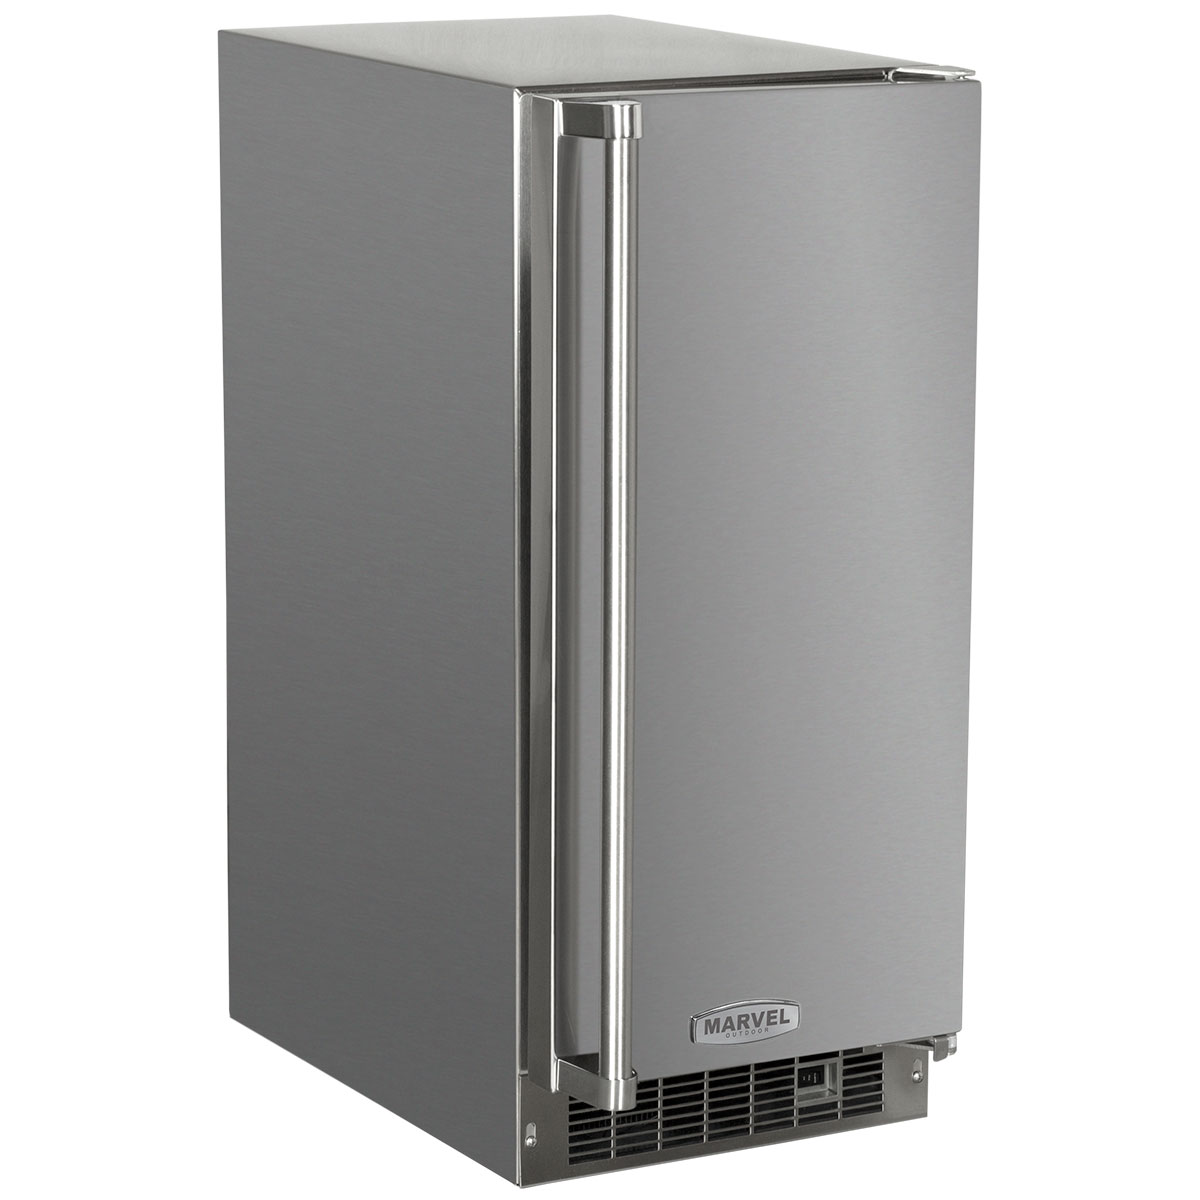 "Model: 3OiMT-SS-F-L | Marvel  15"" Marvel Outdoor Clear Ice Machine-Solid Stainless Steel Door   Left Hinge"